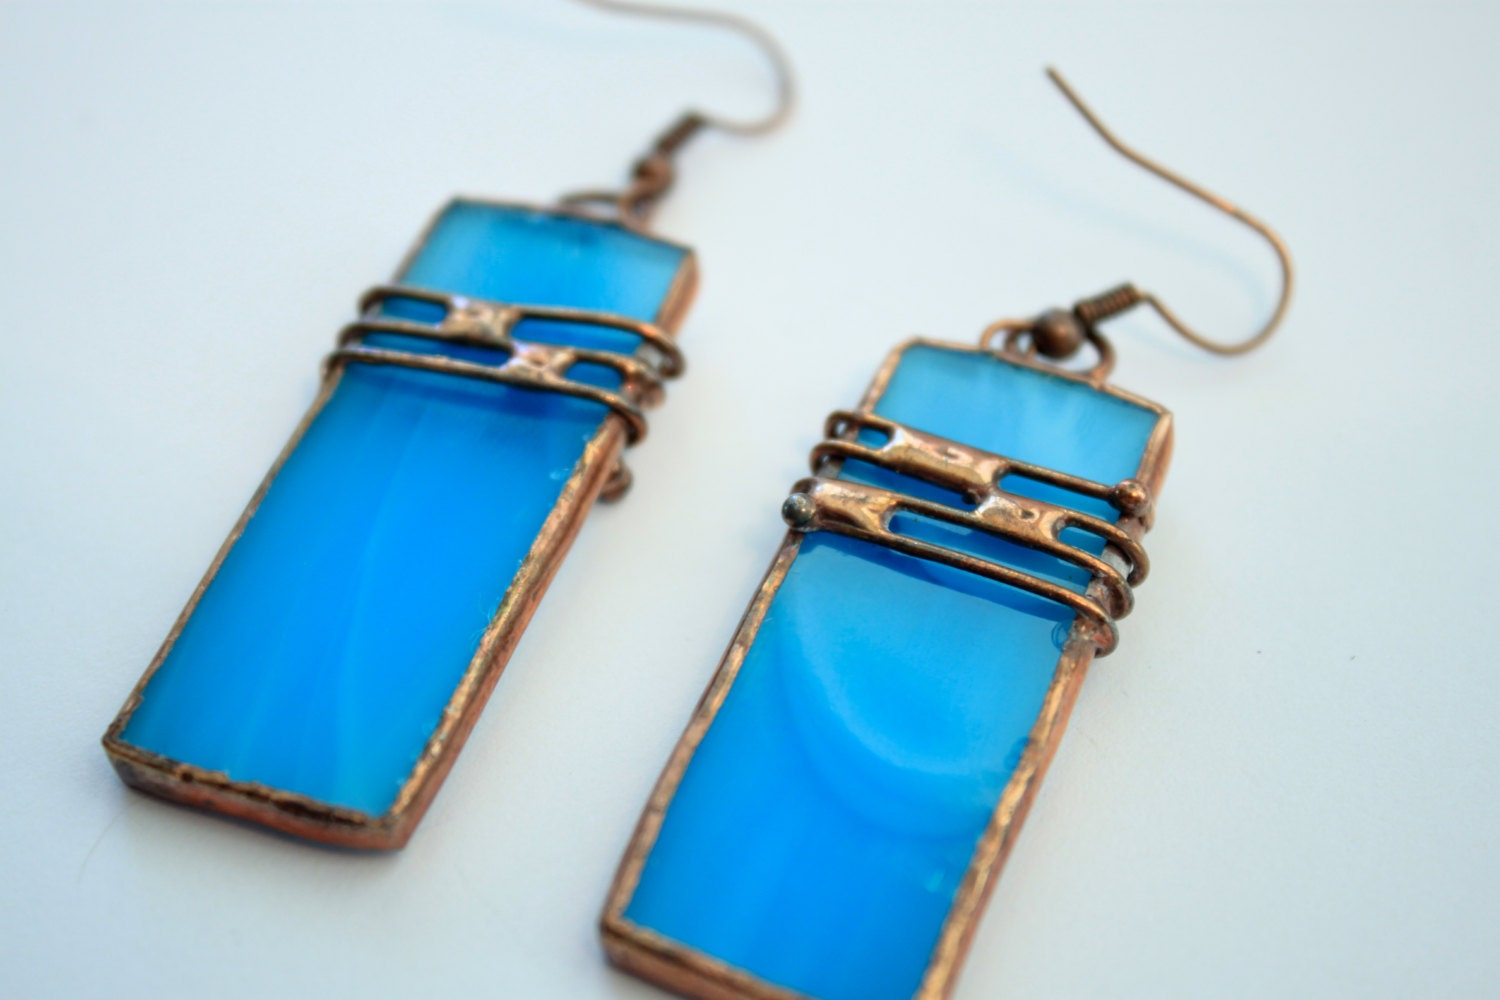 jewellery handmade bronze glass earrings firecrafted detail shop blue